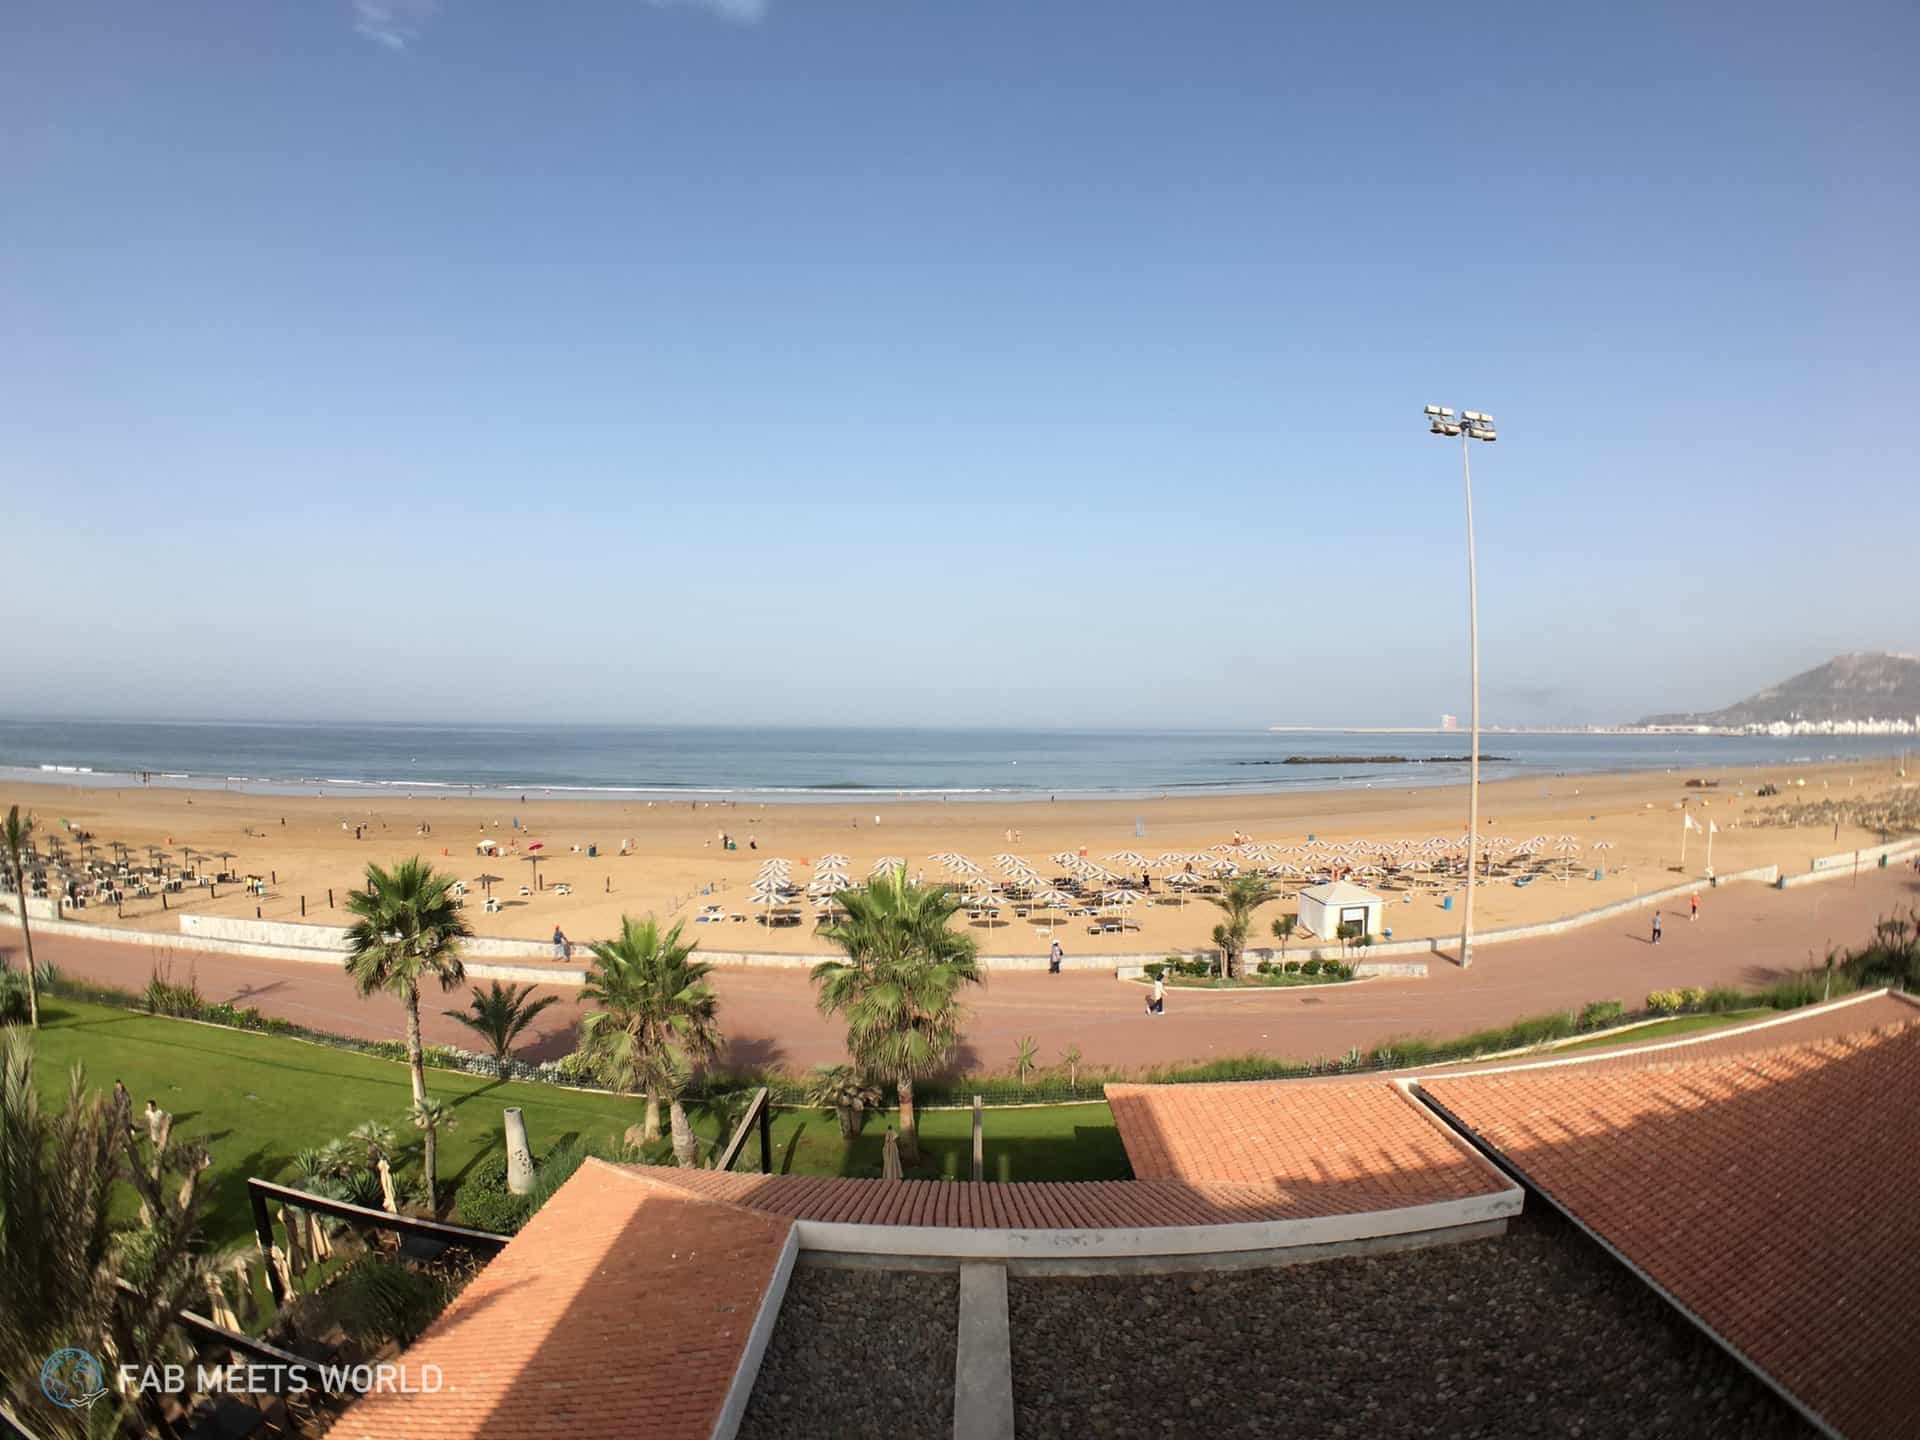 What kind of weather to expect in Agadir, Morocco